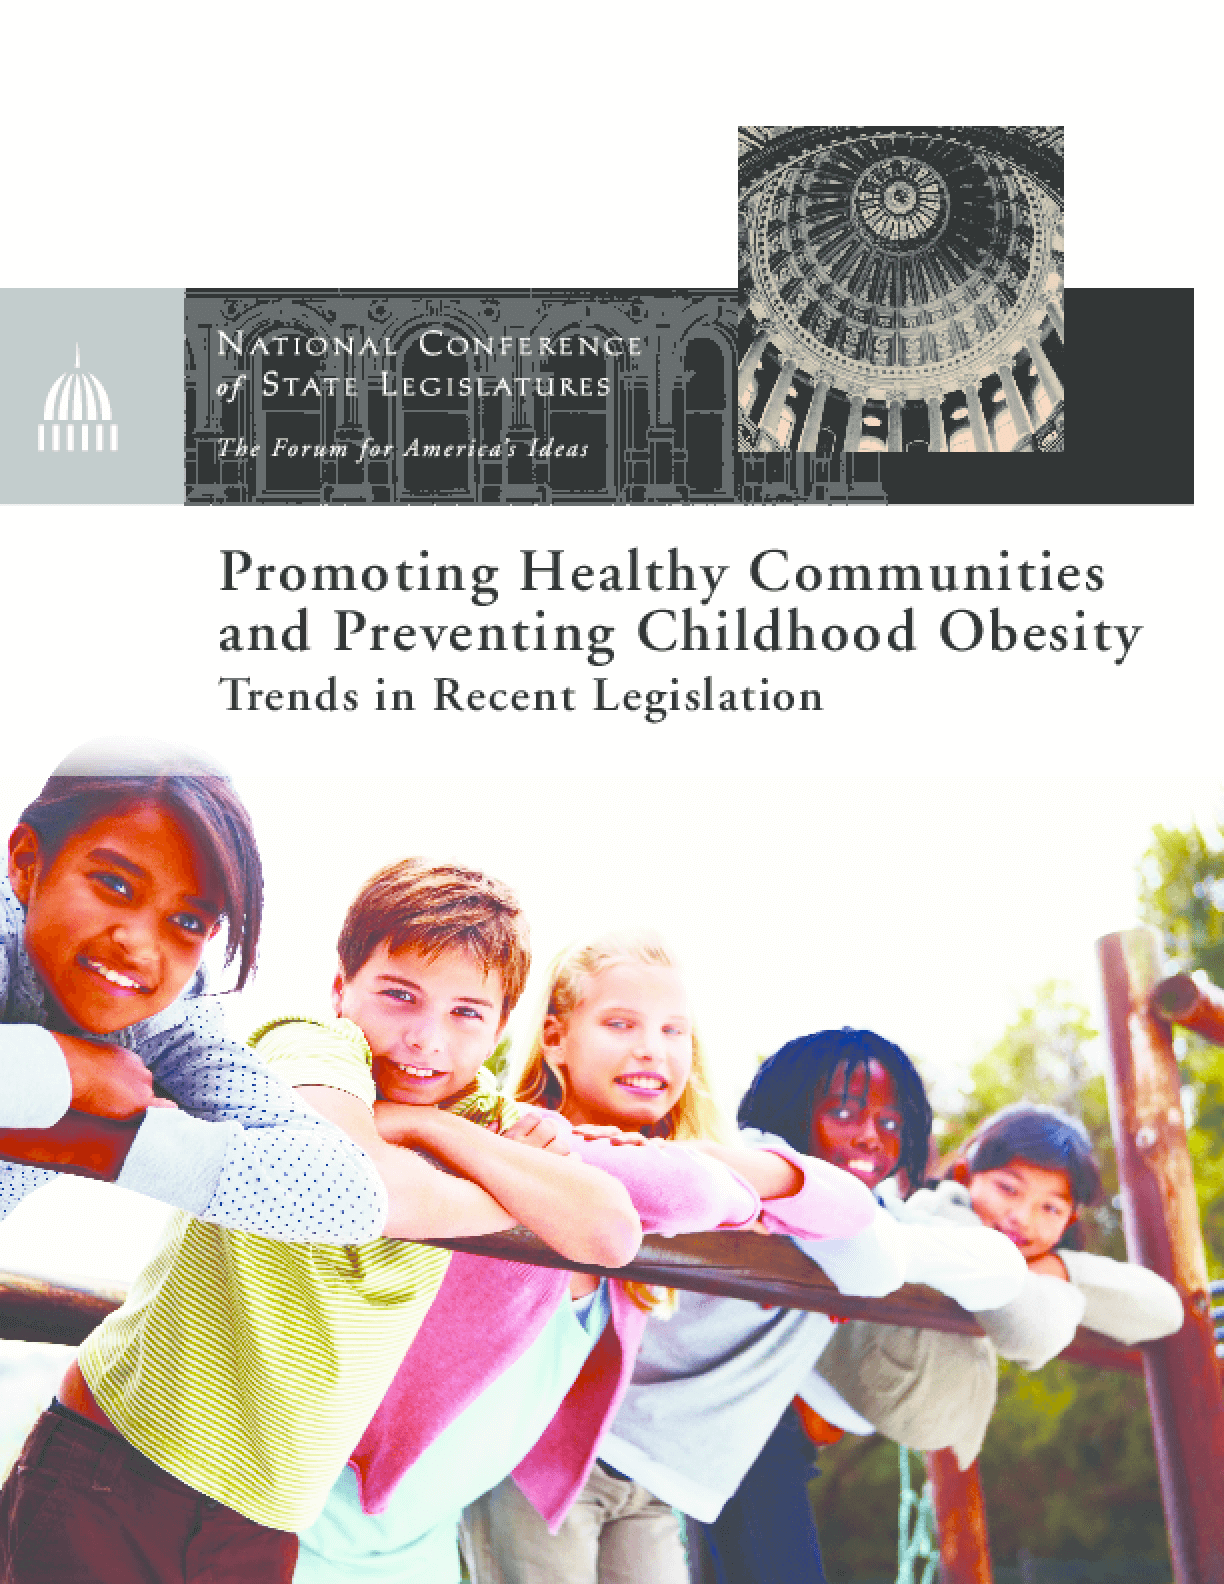 Promoting Healthy Communities and Preventing Childhood Obesity: Trends in Recent Legislation